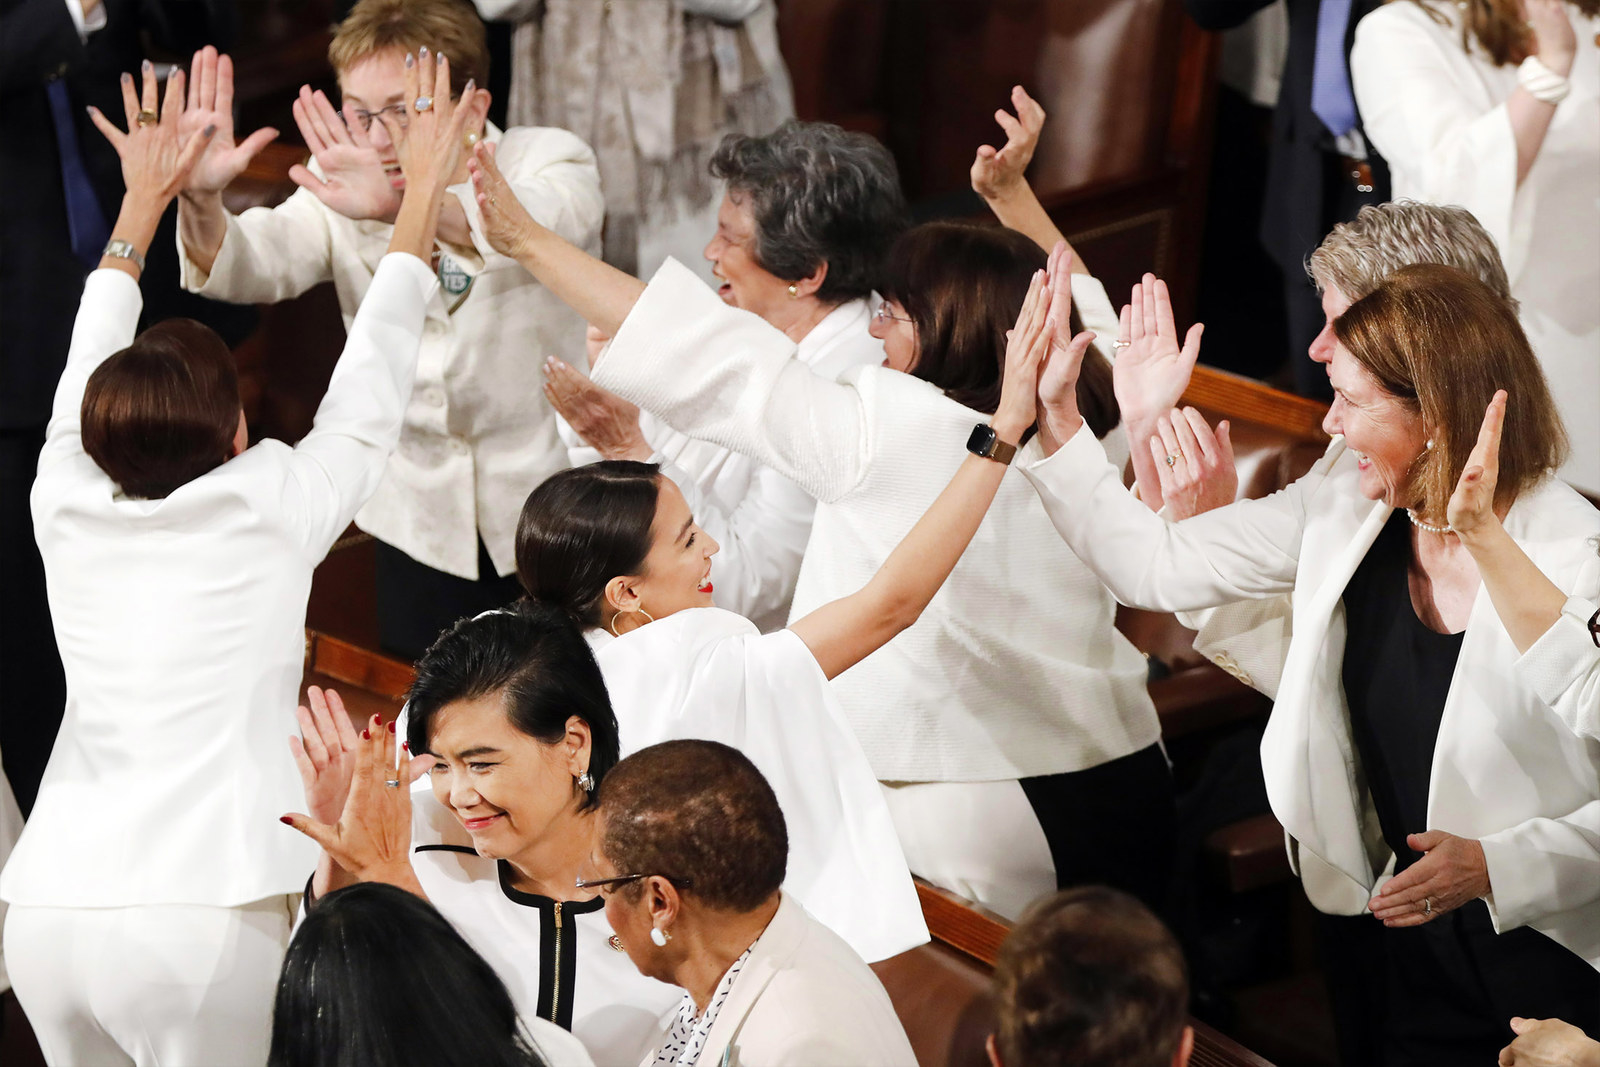 Women members of Congress cheer after President Donald Trump acknowledges more women in Congress during his State of the Union address on Feb. 5.